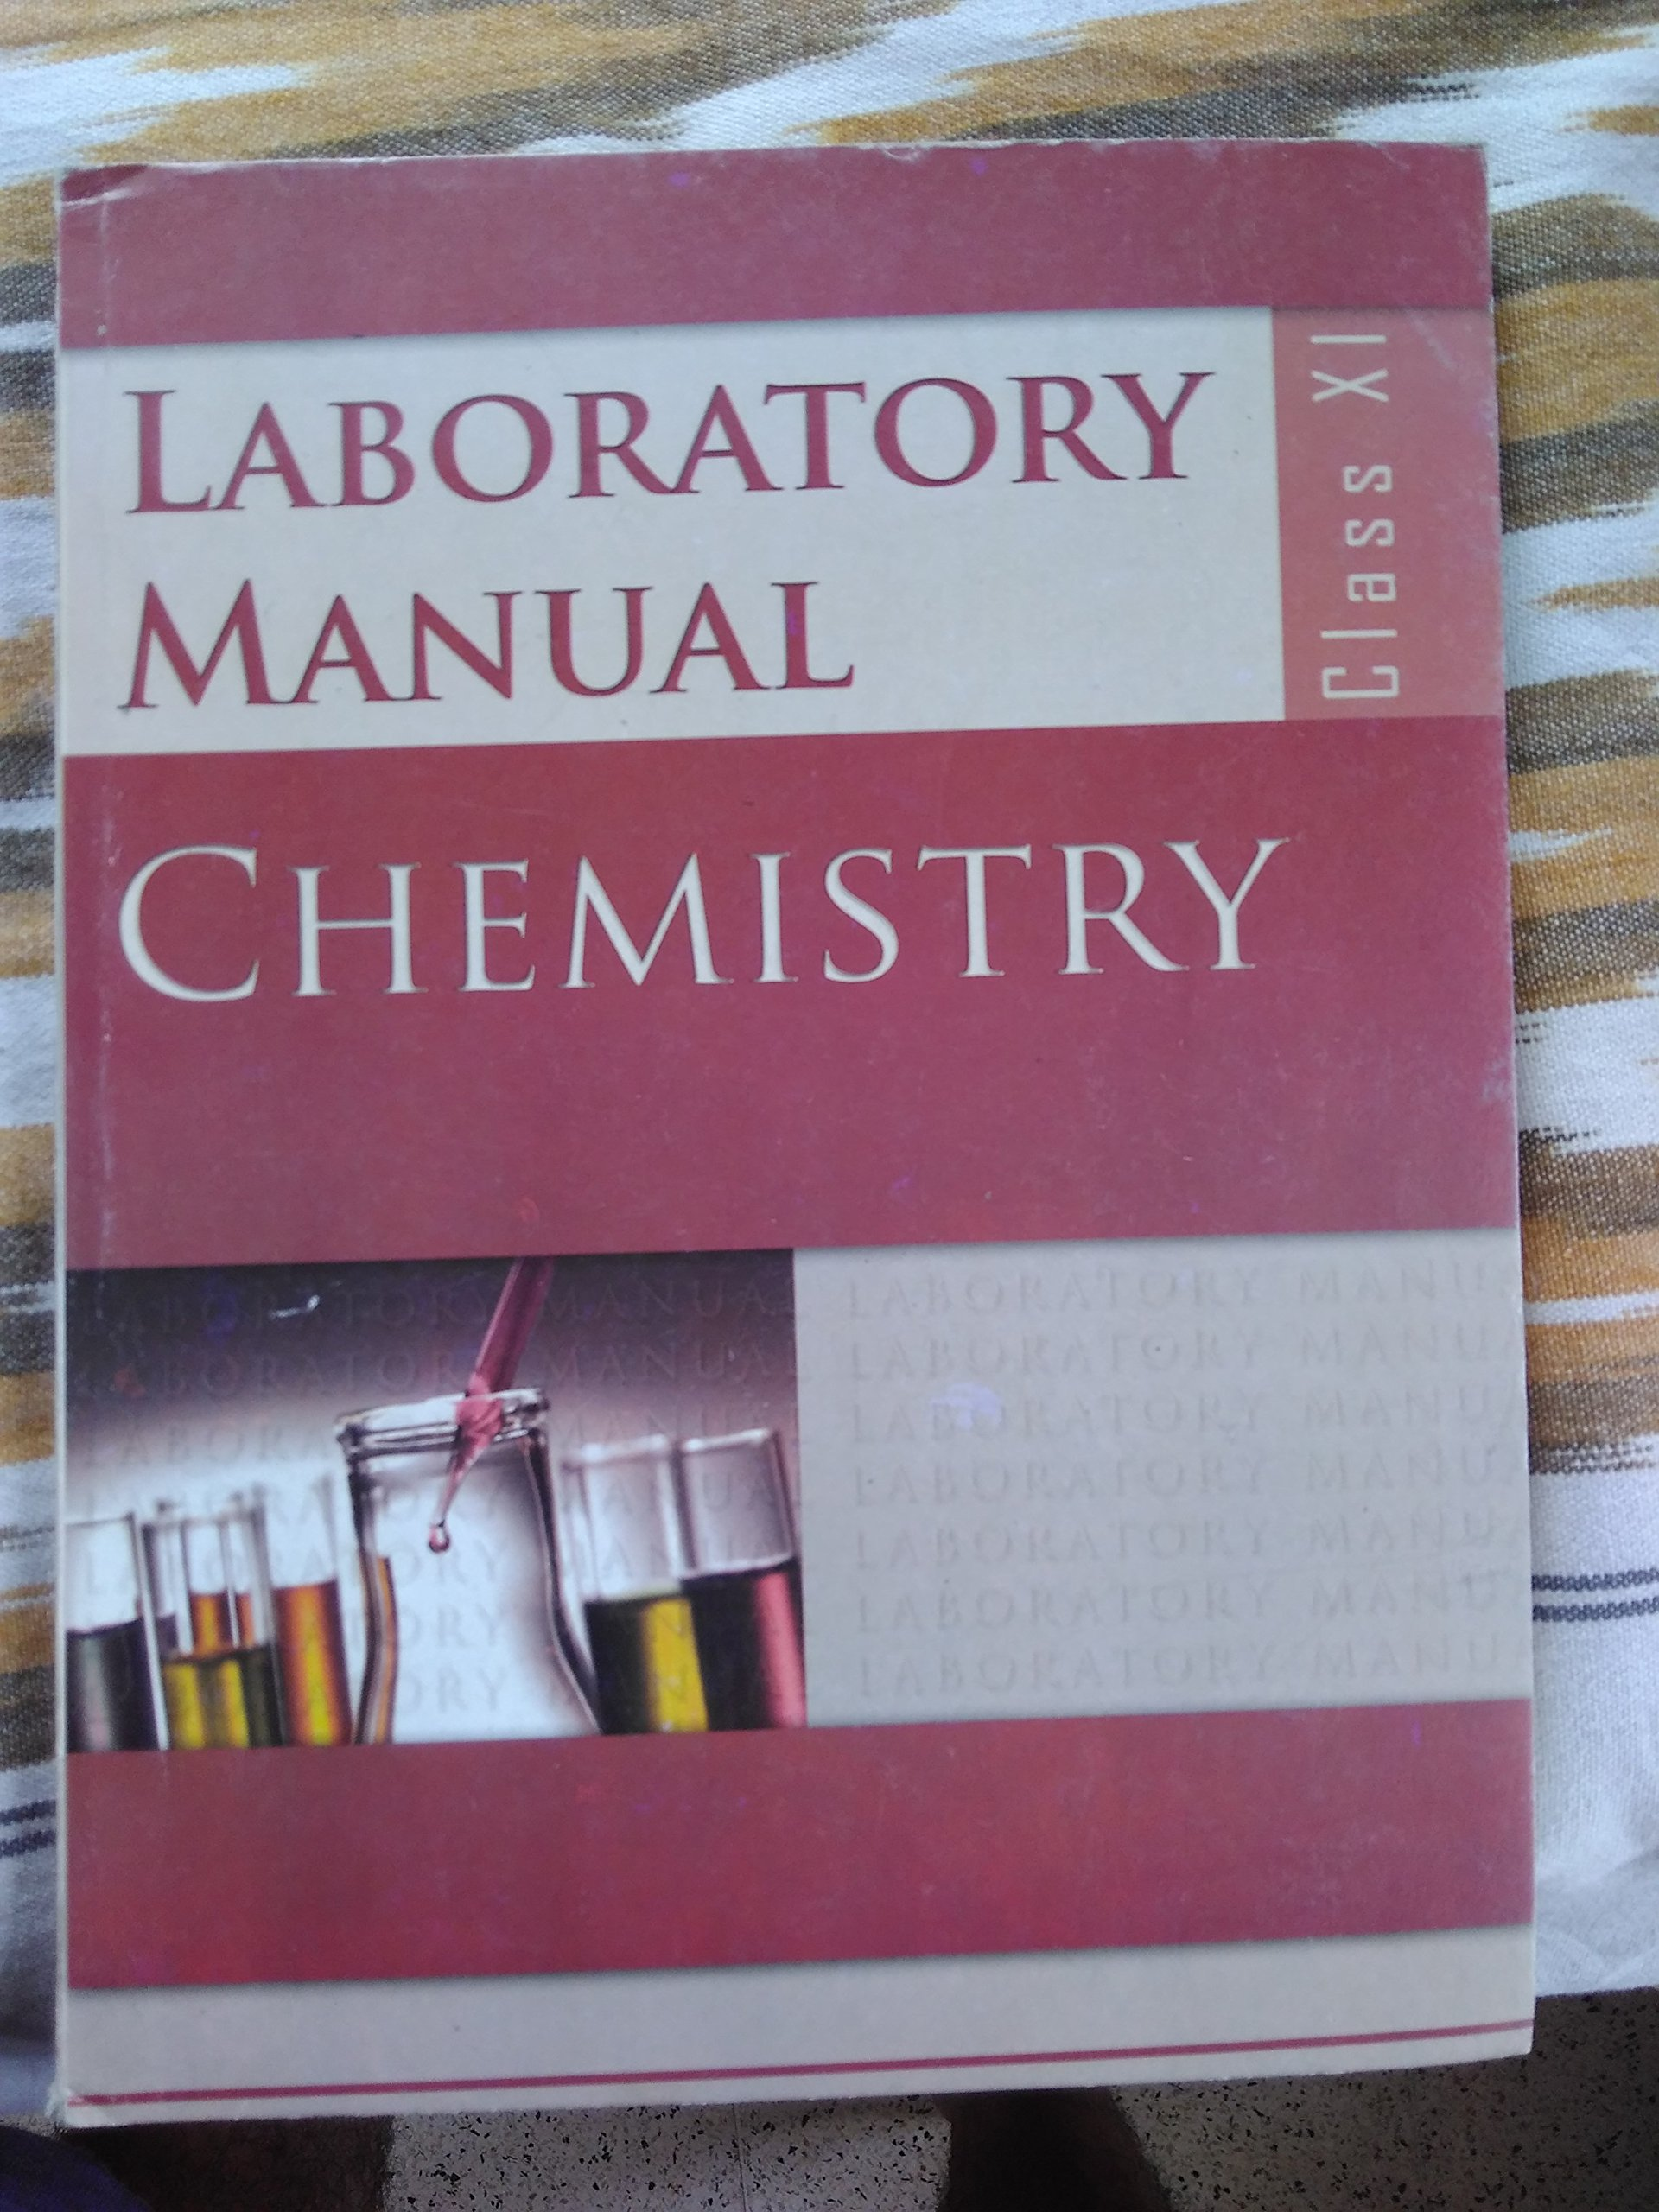 Amazon in: Buy Laboratory manual chemistry NCERT TEXT BOOK FOR CLASS